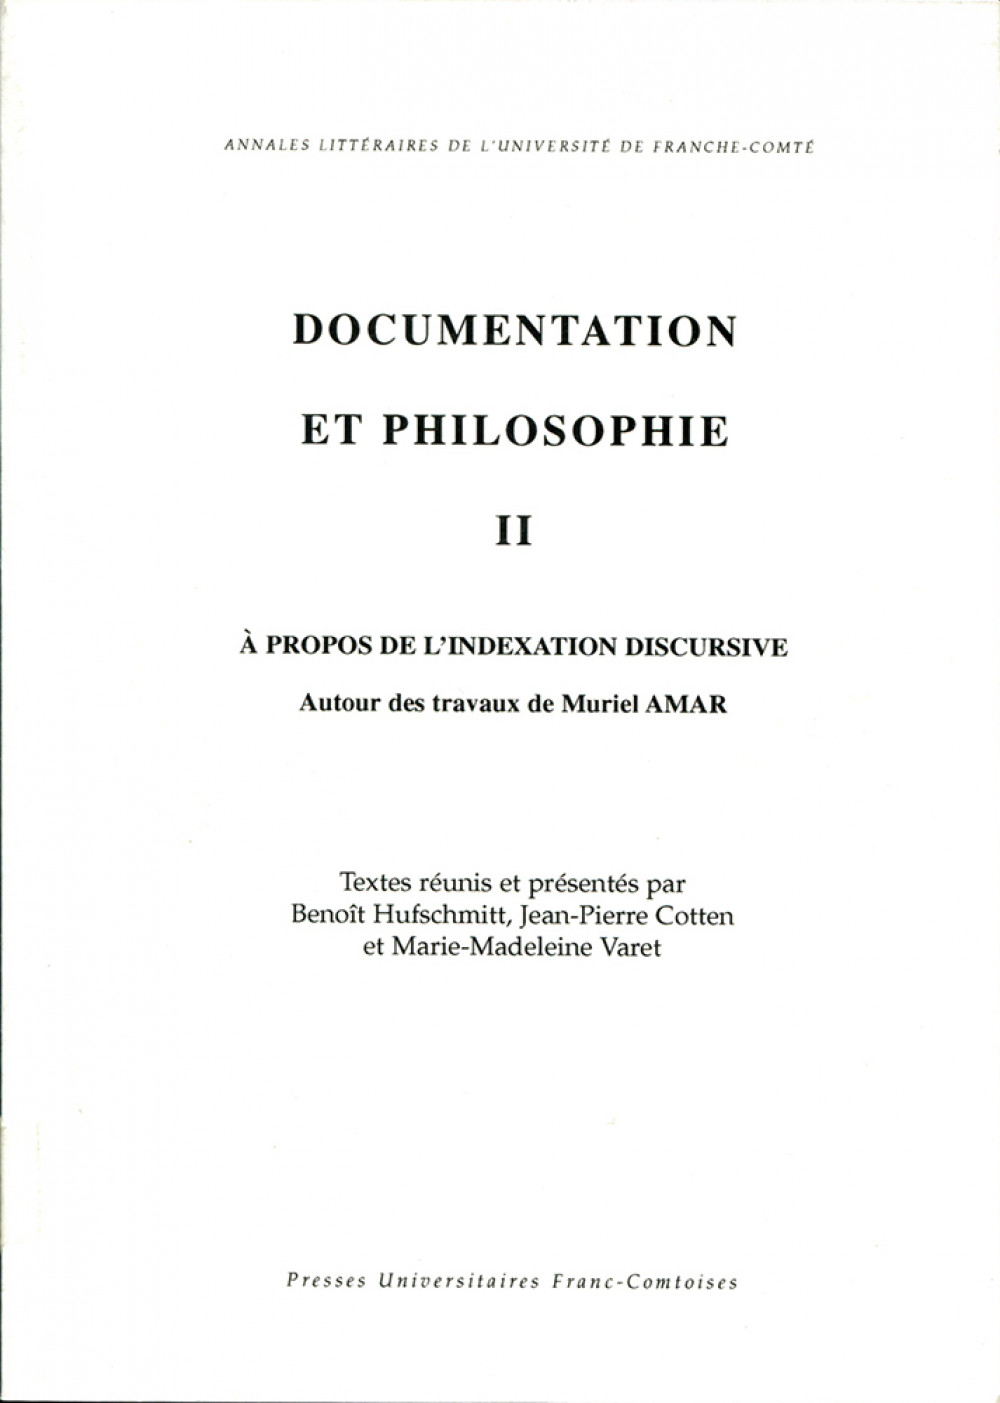 Documentation et philosophie II